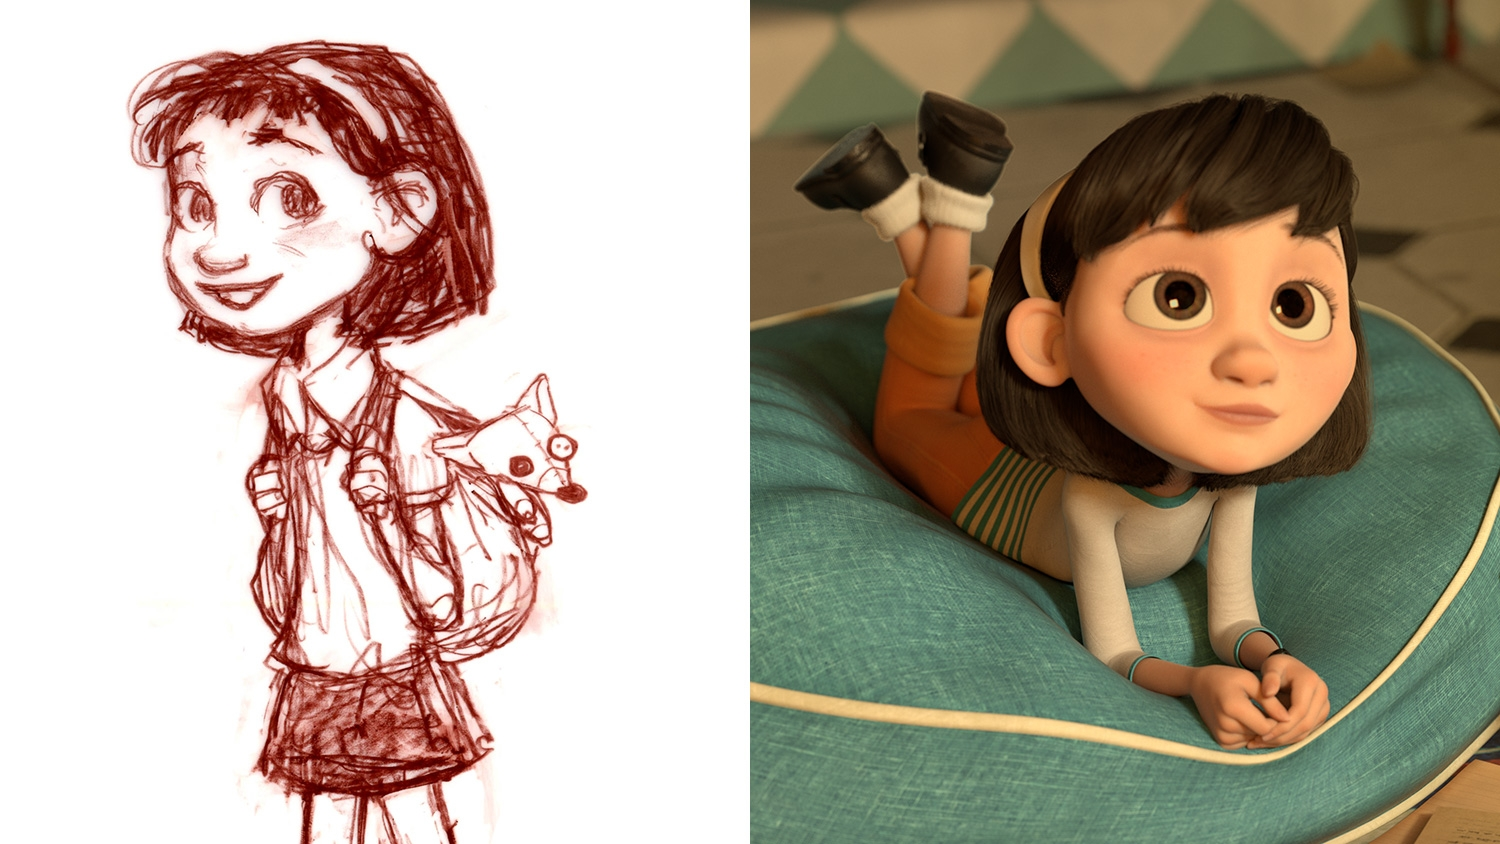 See The Wonderful Original Sketches For The New Animated